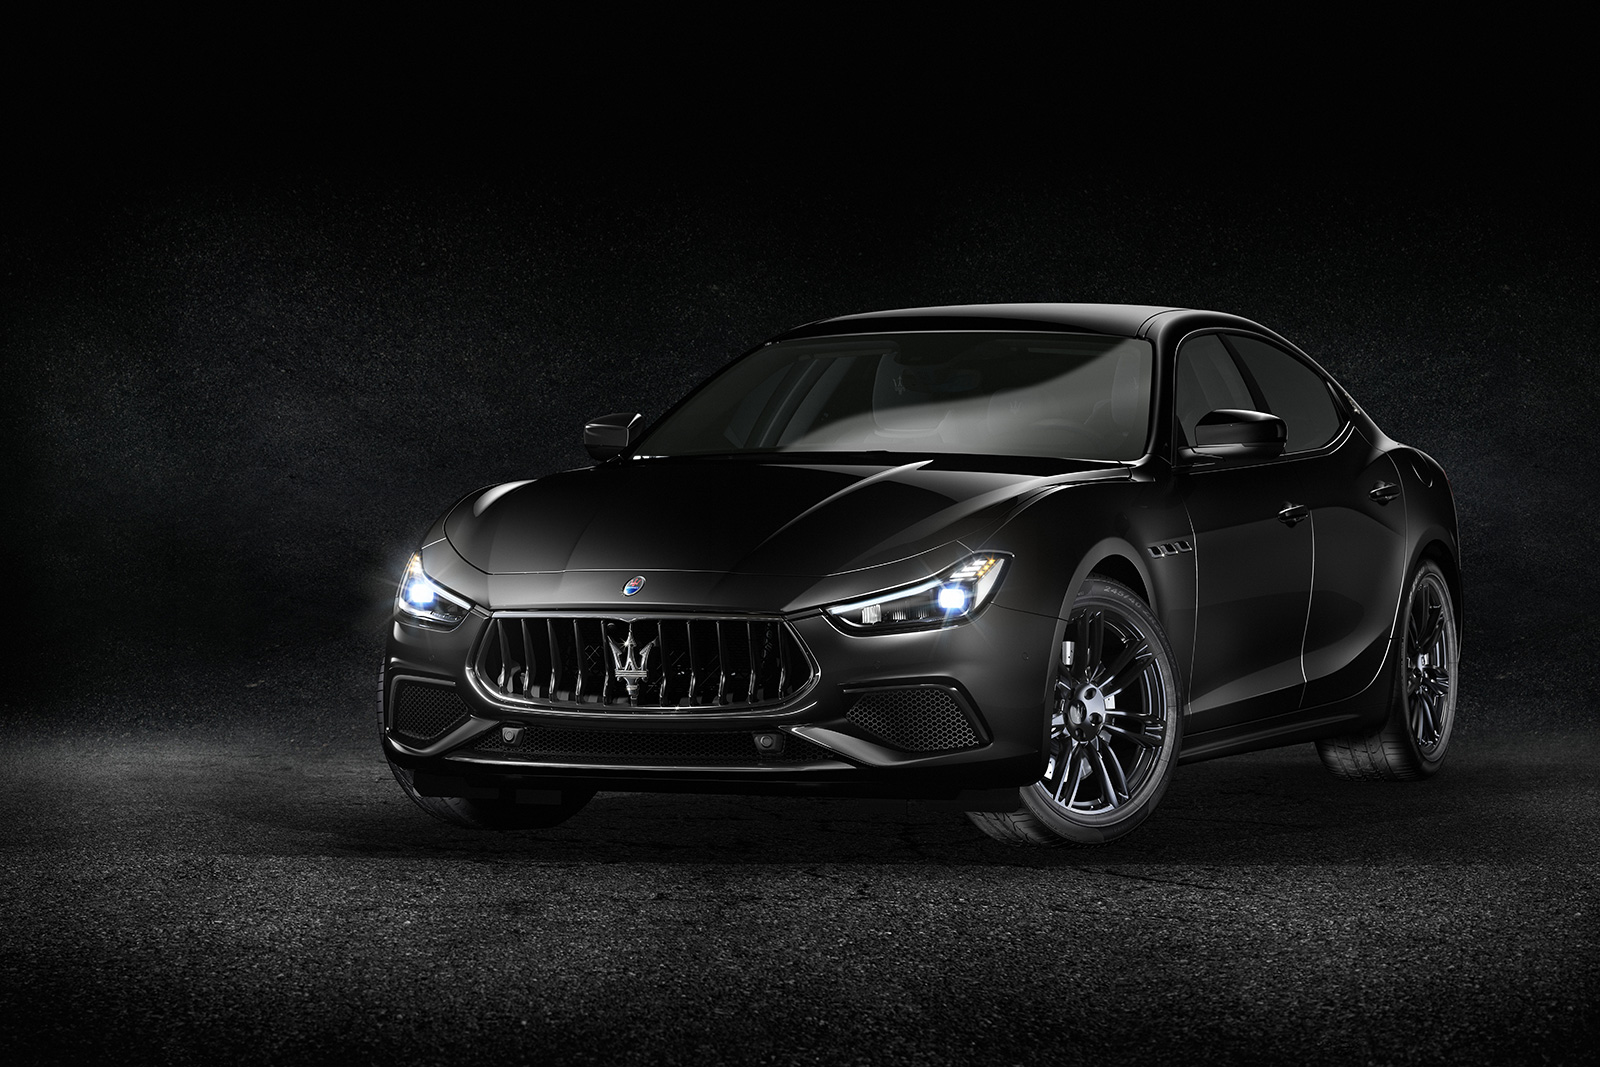 Maserati Shows Off Its Blacked Out Nerisimo Models Again